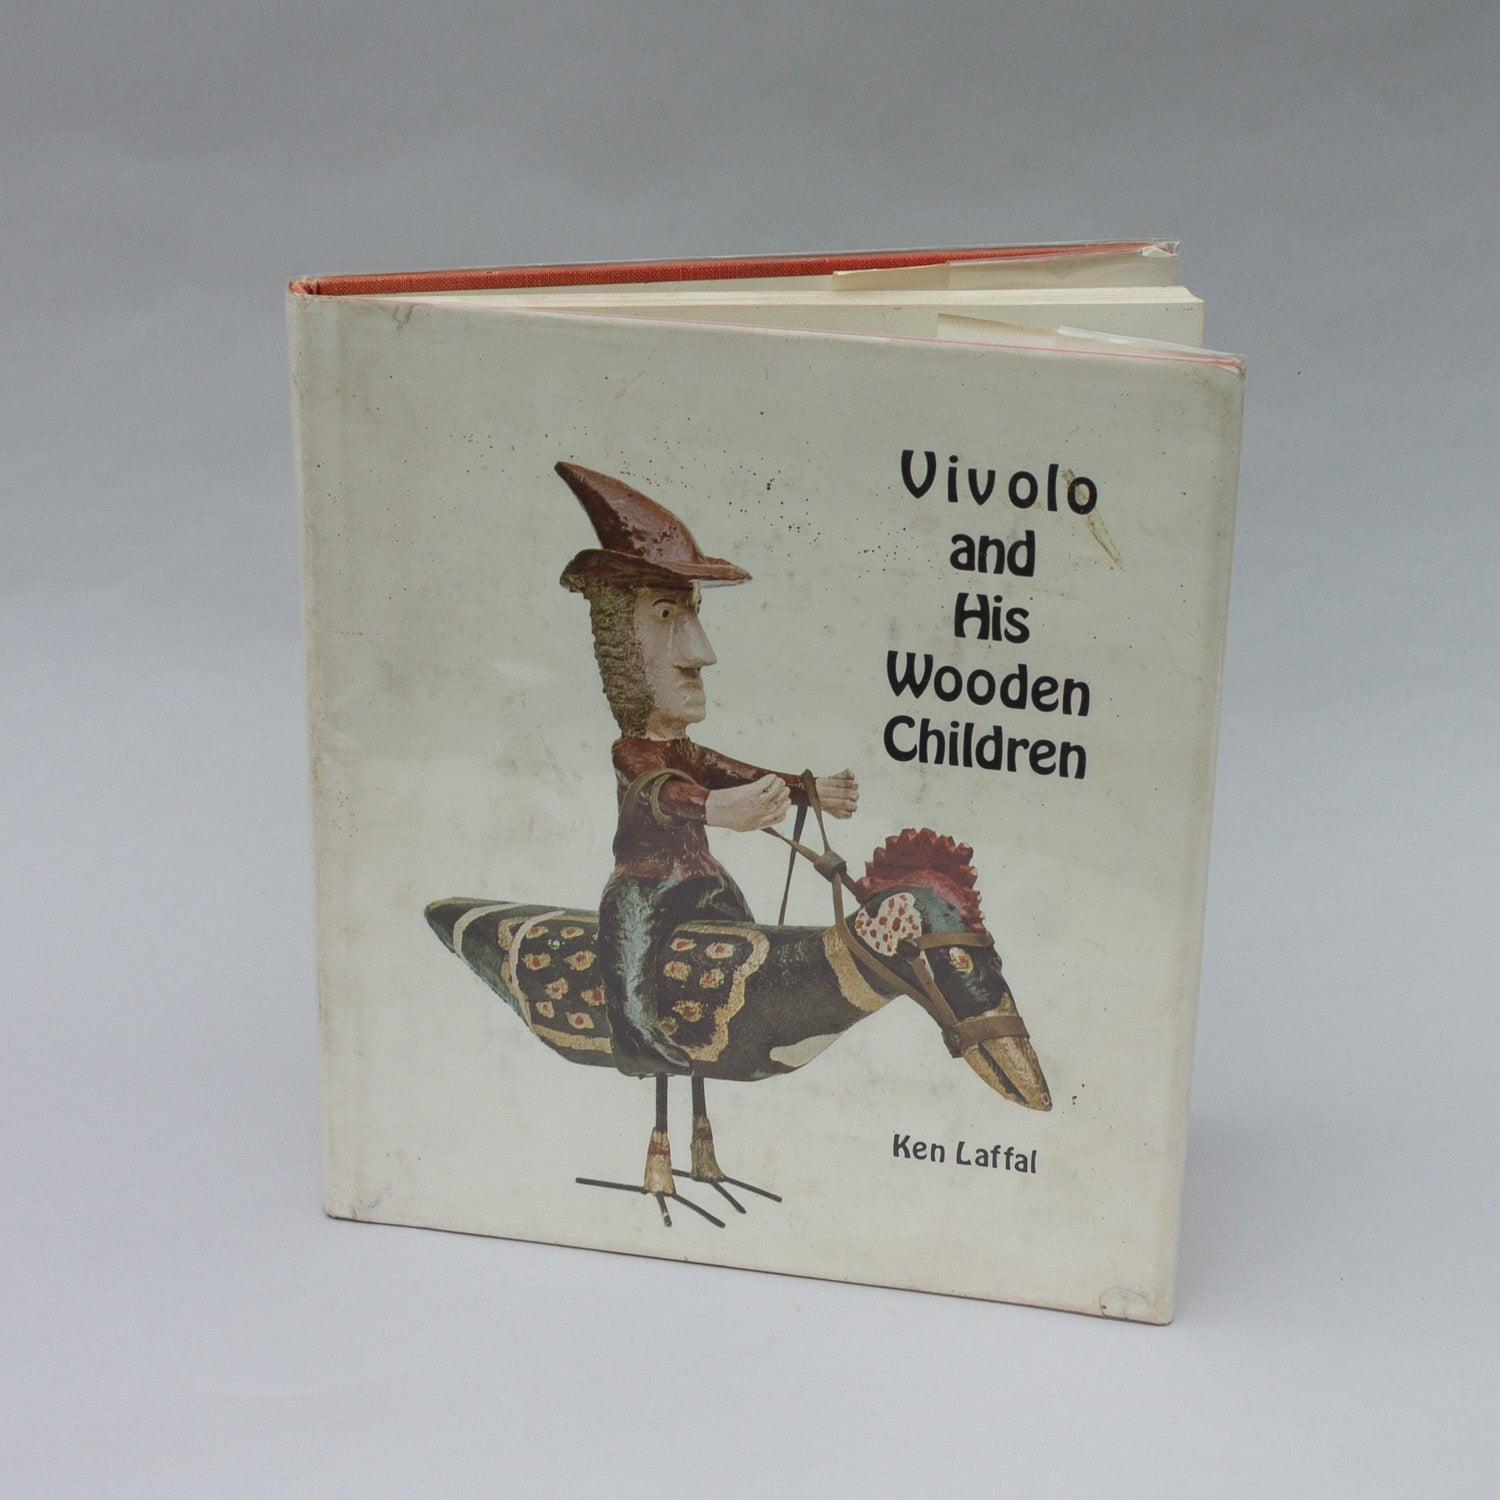 Vivolo and His Wooden Children